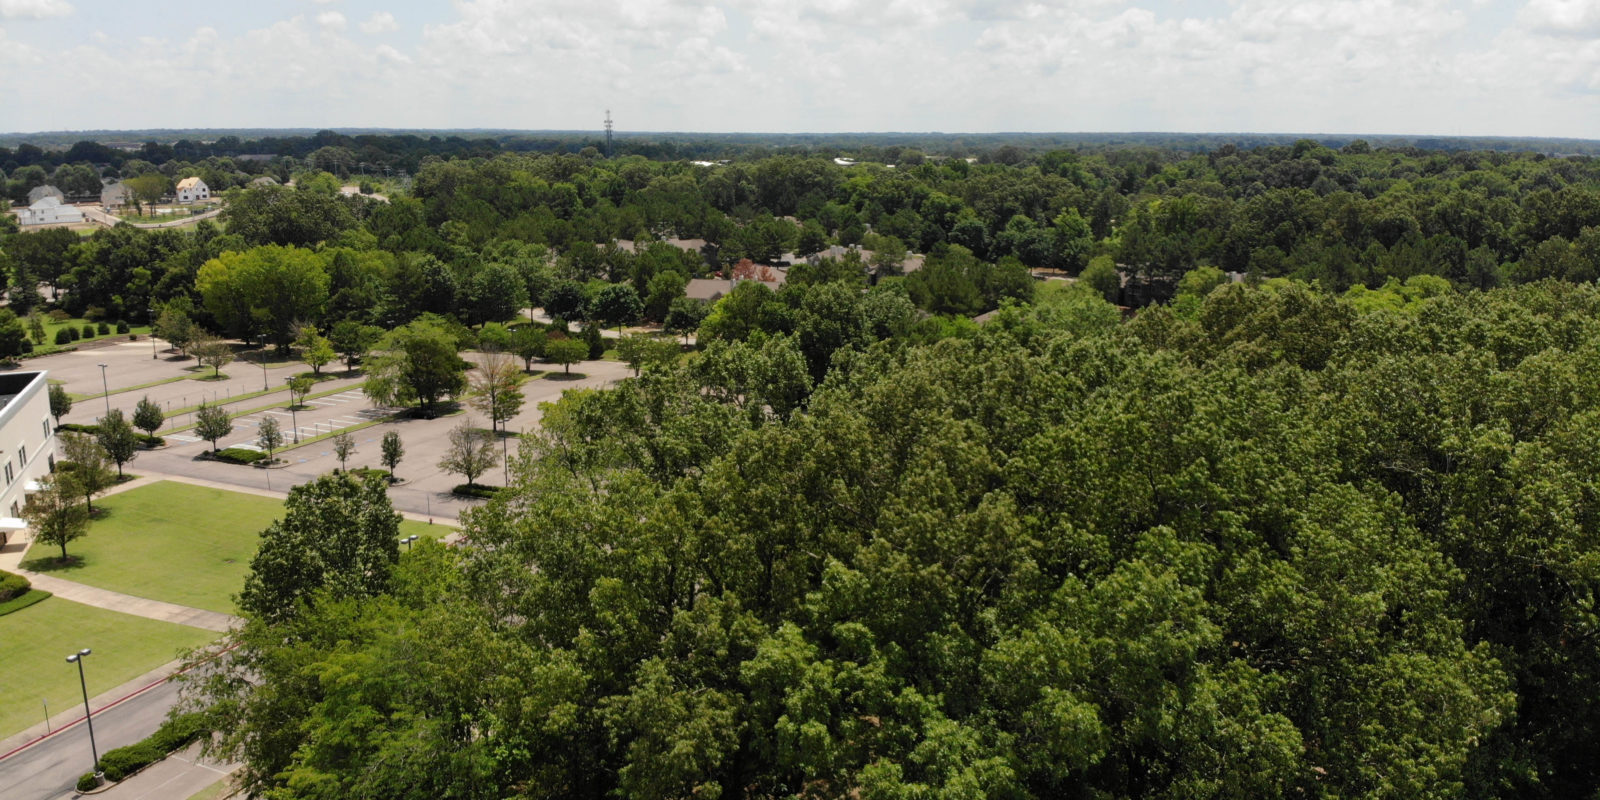 jim west central church collierville tn drone photo